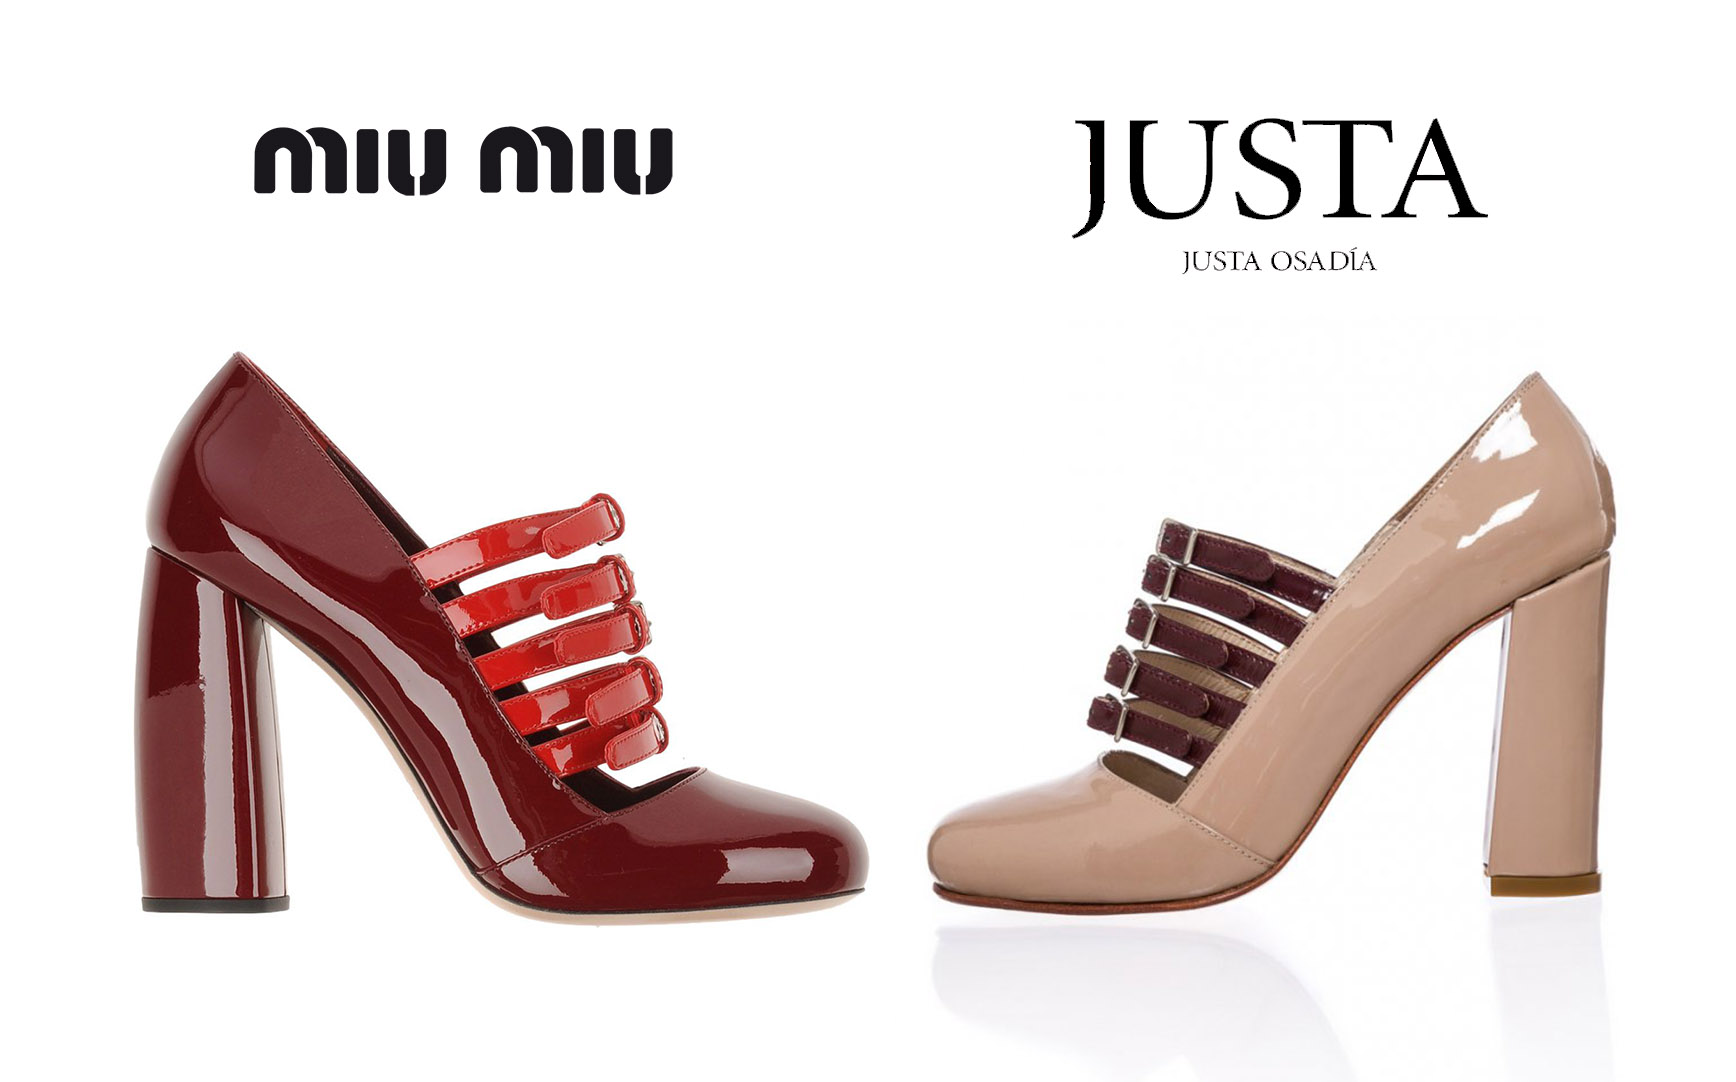 Copias_Argentinas_Inspiraciones_Miu_Miu_Fall_2015_Mary_Jane_Strappy_Pumps_Justa_Osadia_Invierno_2016.jpg